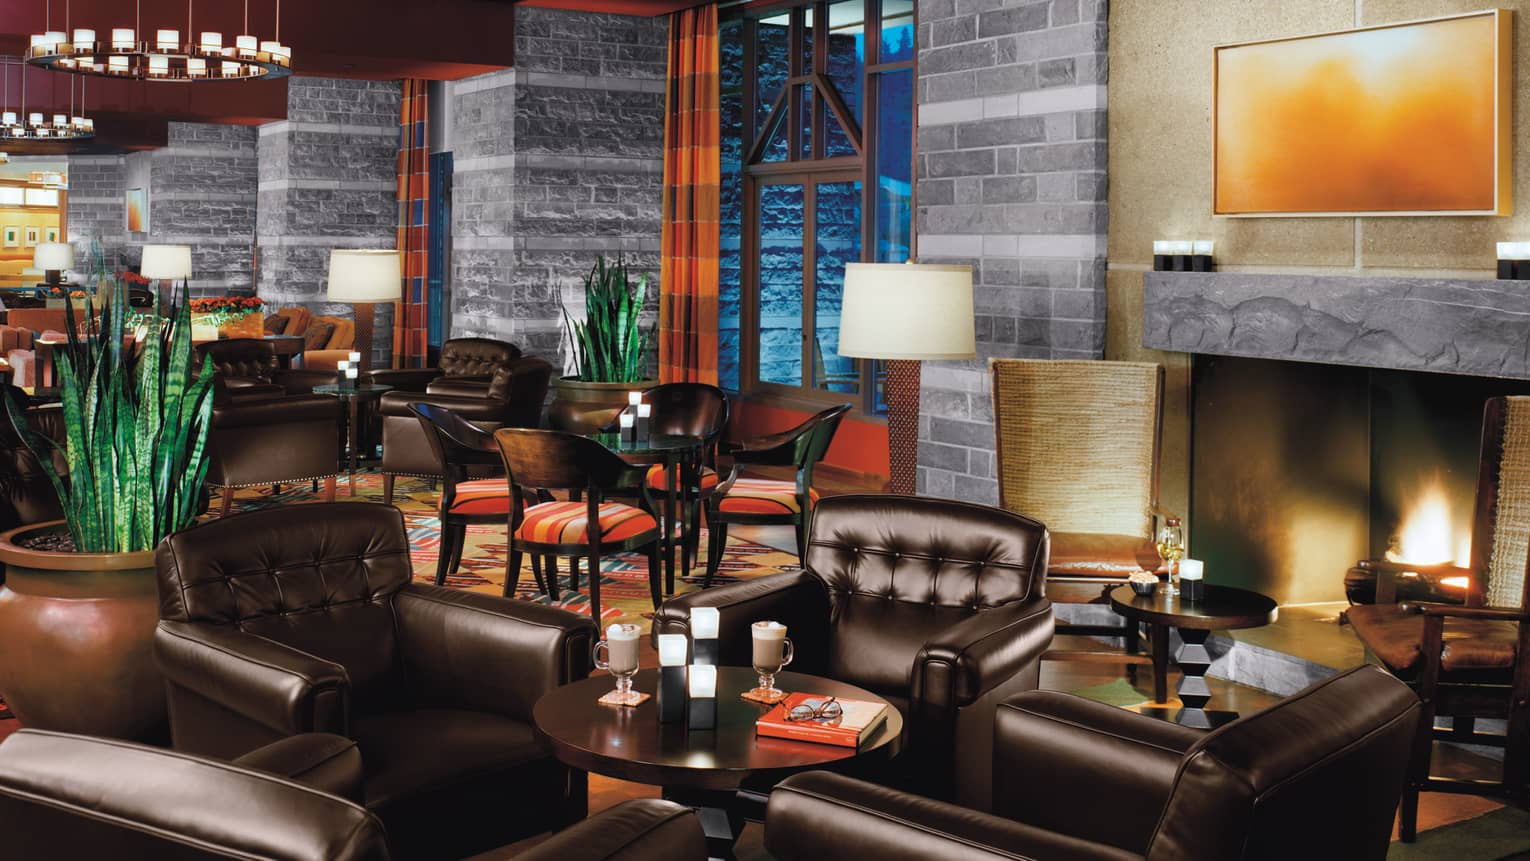 Sidecut lounge large black leather armchairs around cocktail tables, by slate fireplace